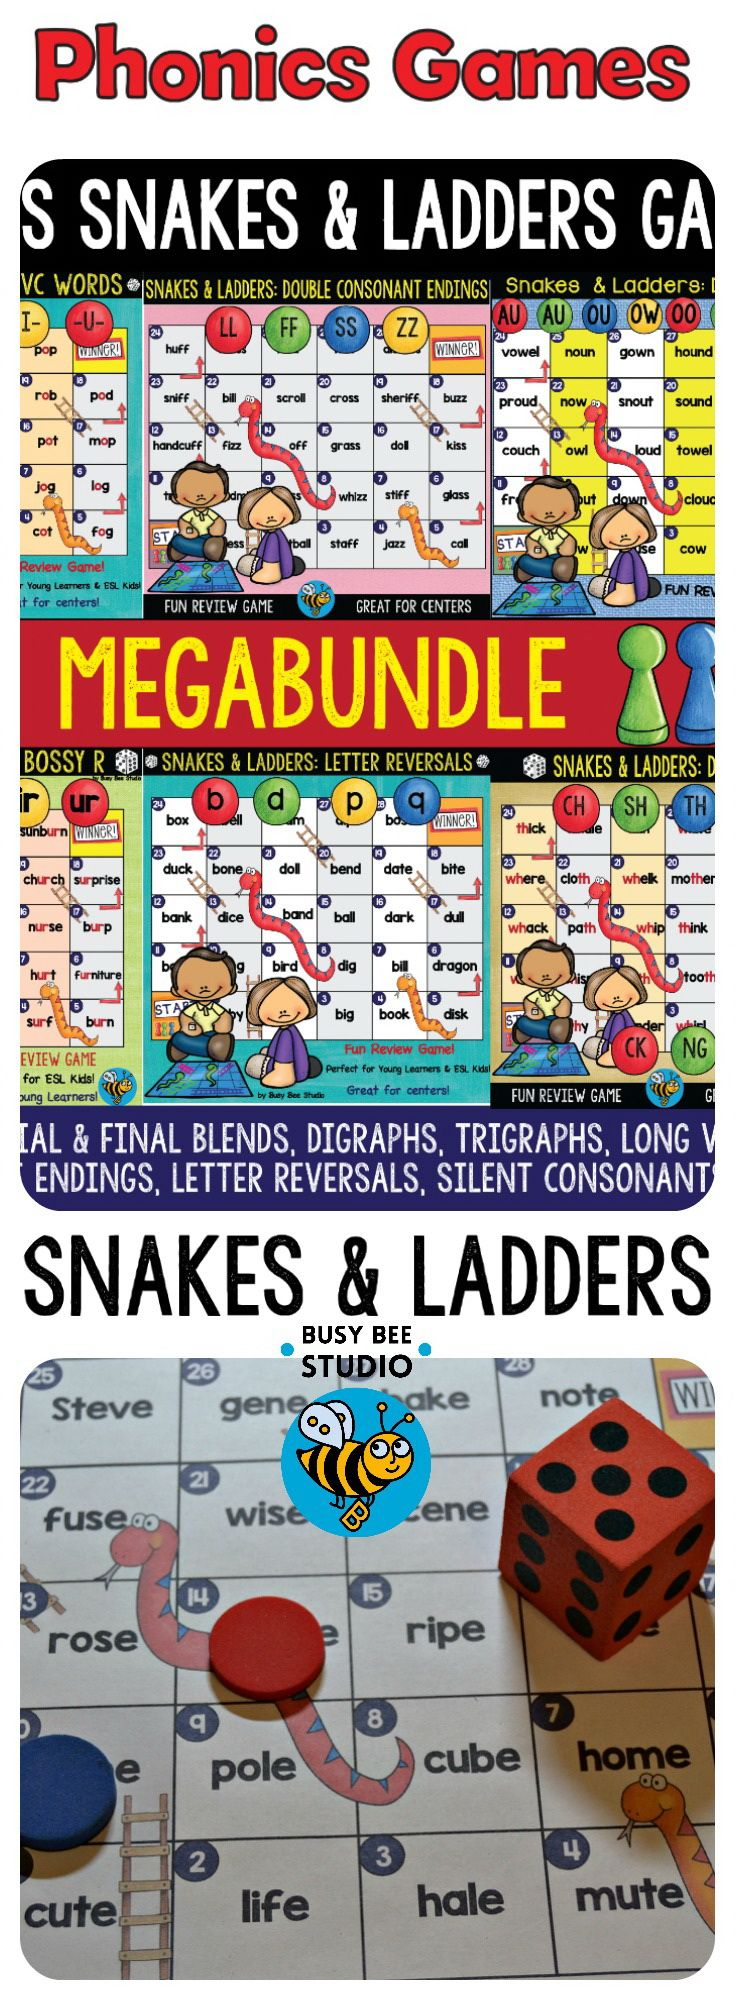 Educational Snakes and Ladders Game is a great review activity. Just print and play! The games are great for reinforcing and reviewing phonics skills.These game are perfect for your phonics centers and phonics word work activities. Phonics Snakes and Ladders Games Mega bundle includes the following games:CVC, CVCE, BLENDS, Digraphs, Trigraphs, Silent Consonants, Long Vowel Teams #tpt, #phonics, #readinggames, #ESL, #ELL, #ELA